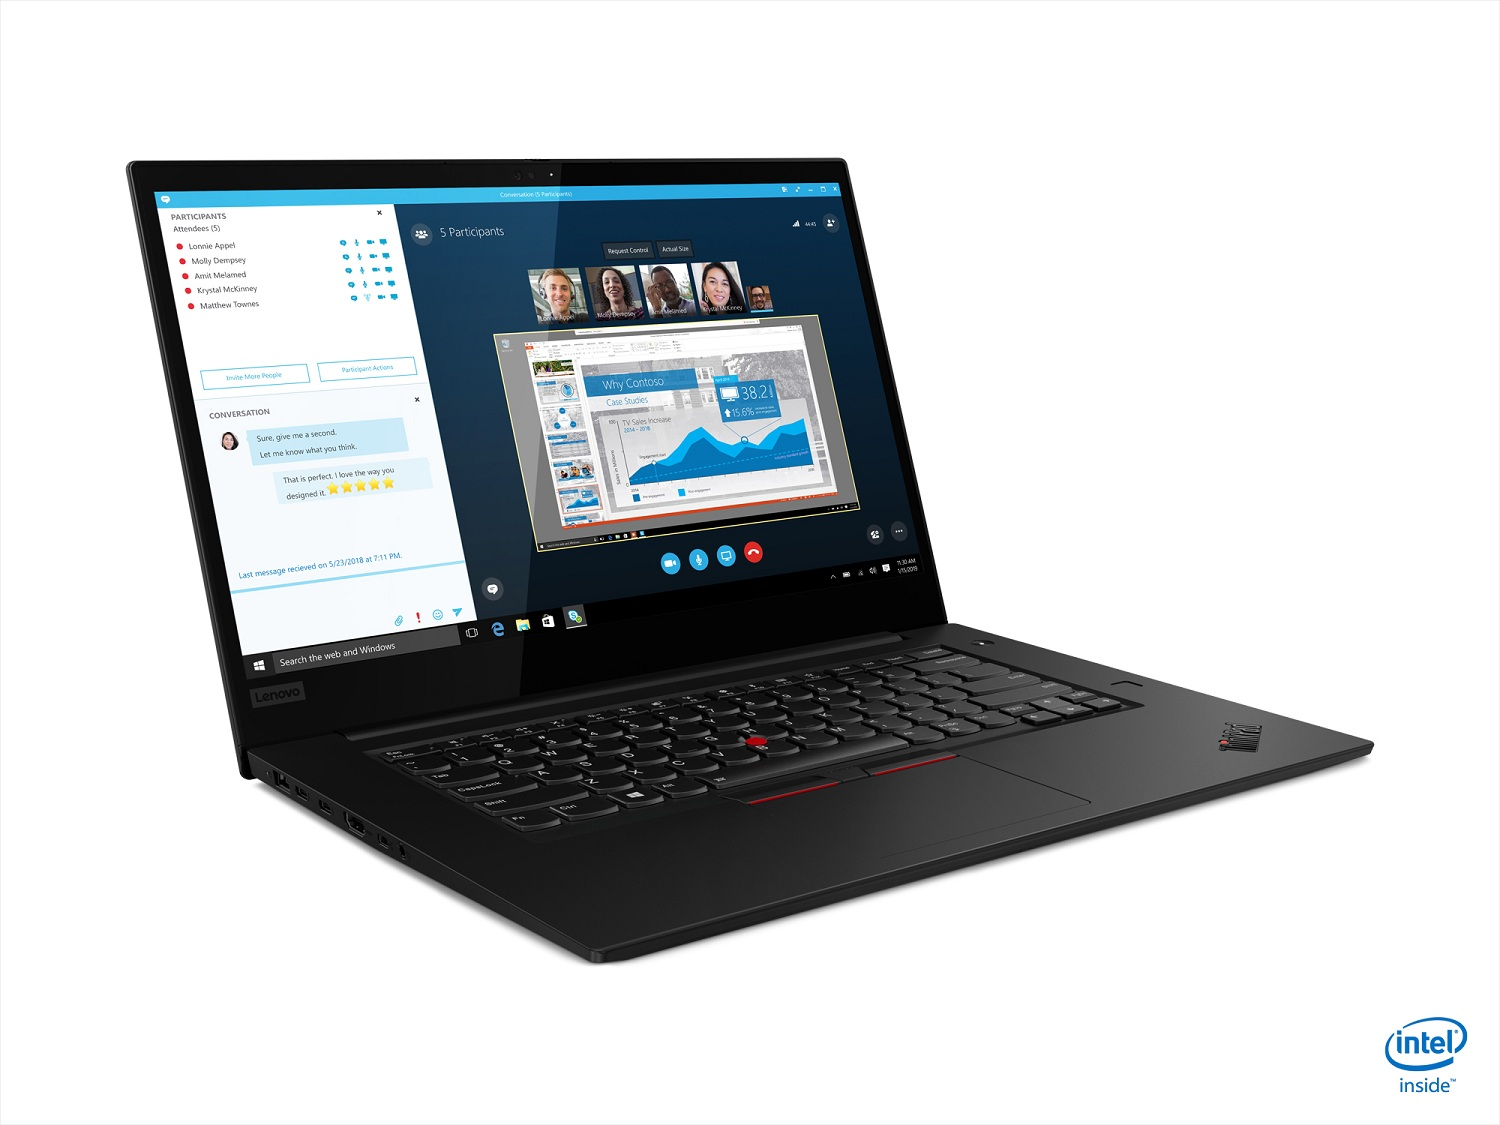 05 tp x1 extreme p2 touch hero front facing right 1024x768 - Lenovo's ThinkPad X1 Extreme Gen 2 takes the popular laptop to the next level